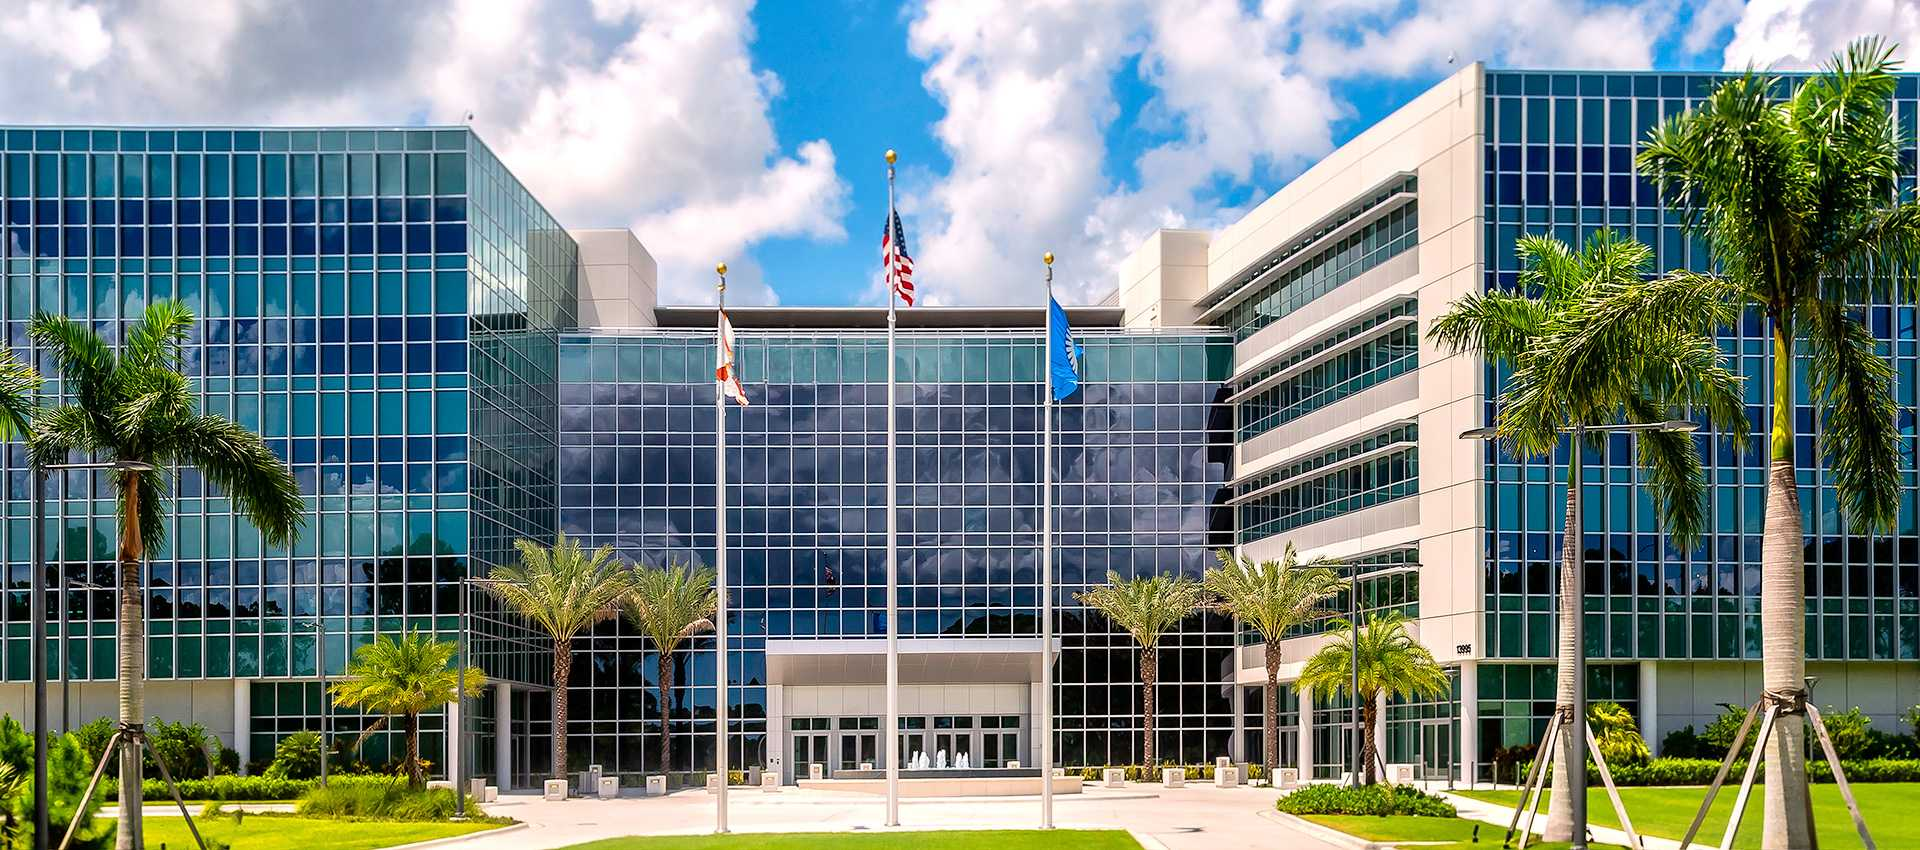 About Business Real Estate Florida